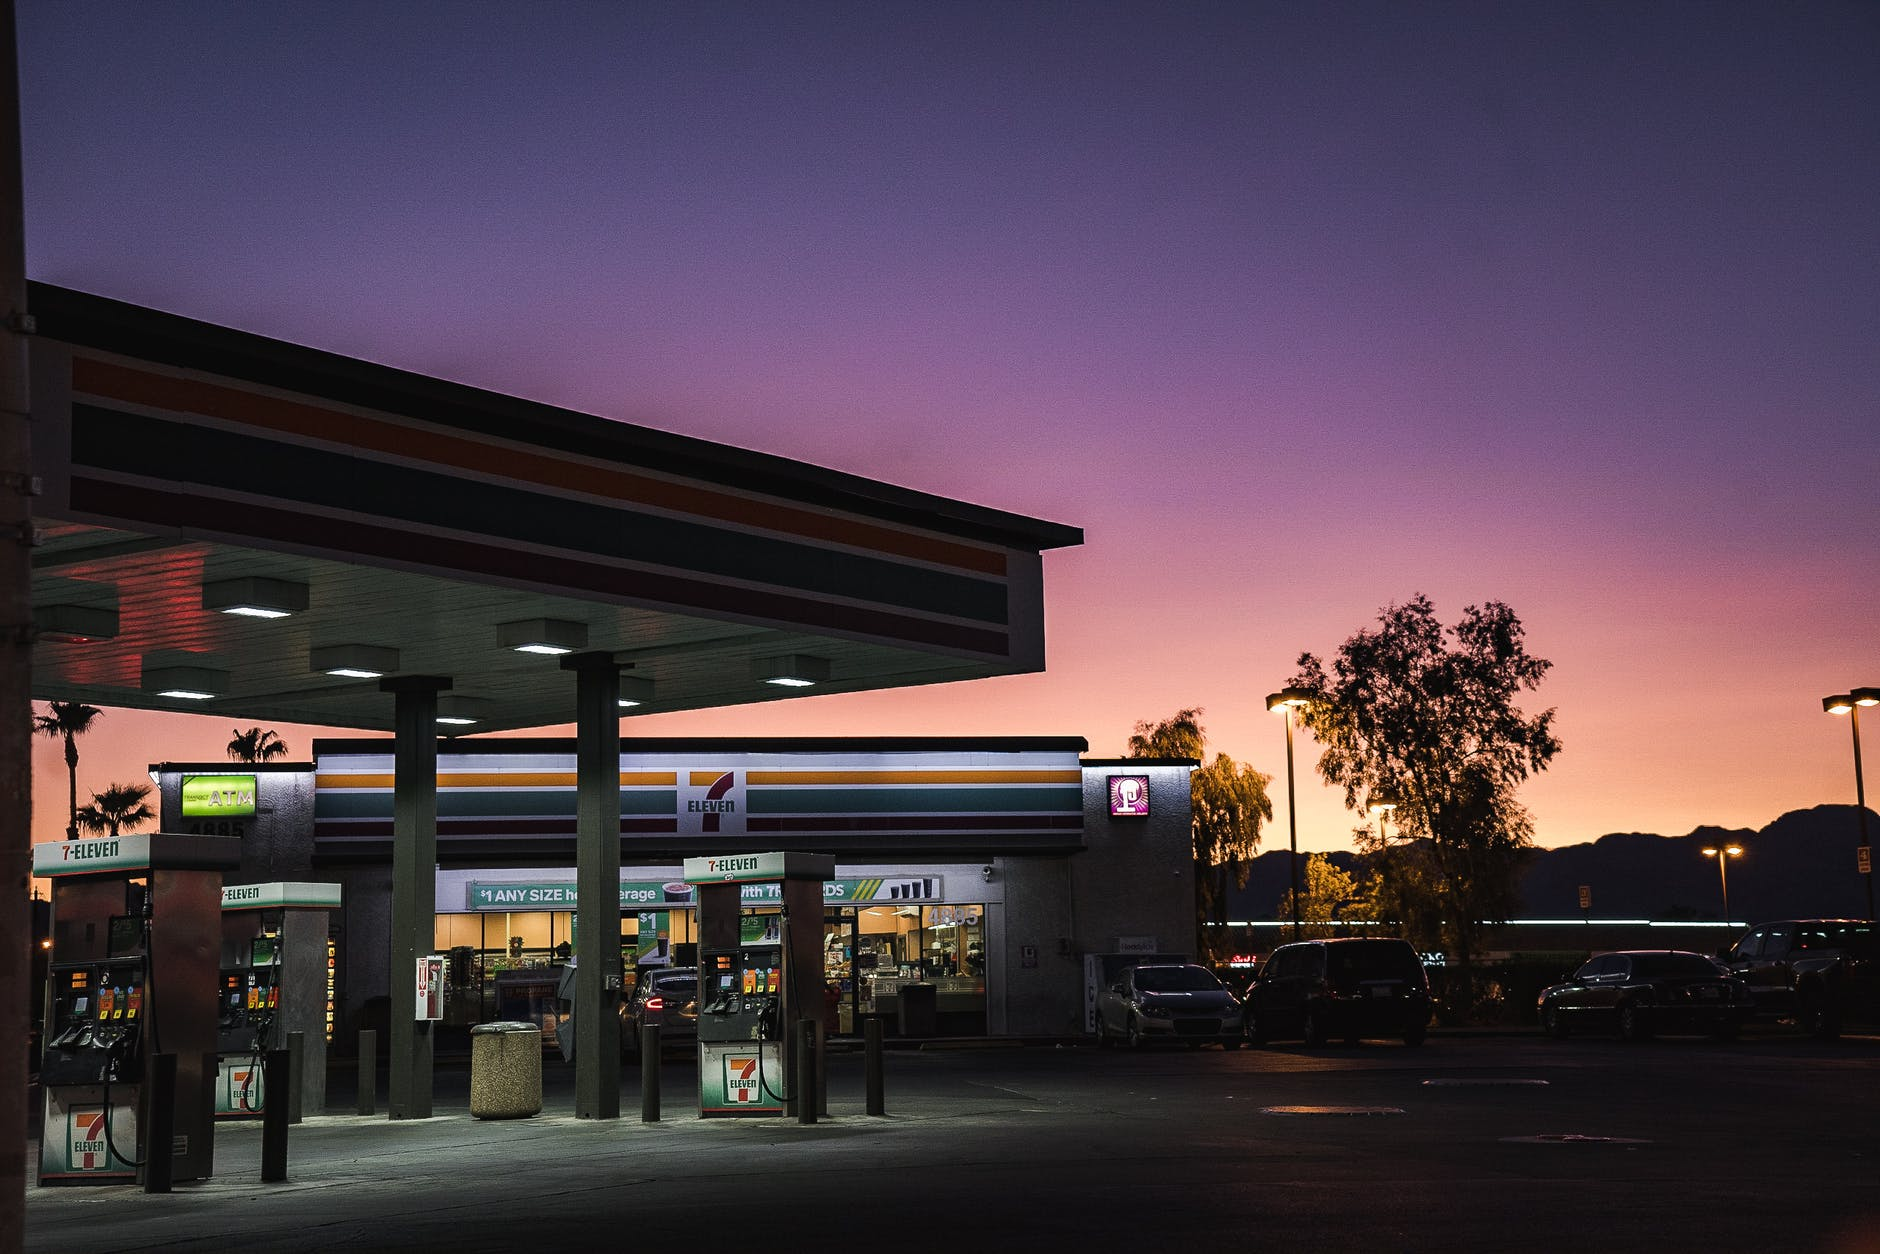 Jenson walked to the gas station, but they didn't let him in.   Source: Pexels